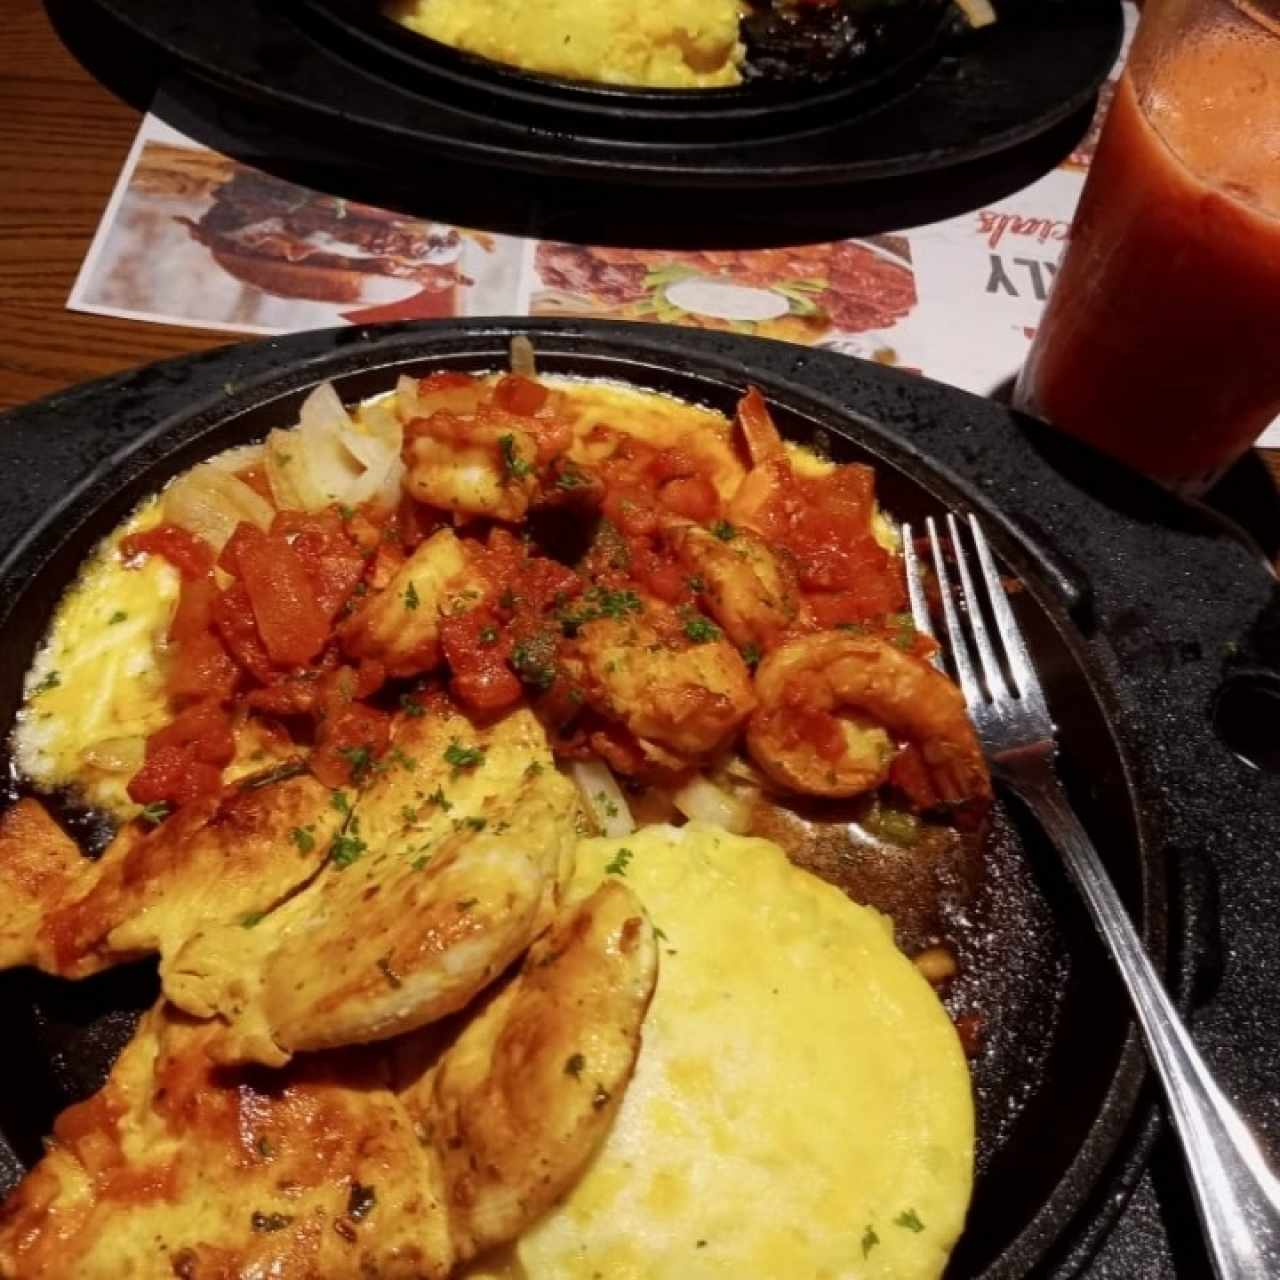 Sizzling Chicken & Shrimp, Jugo de fresa!